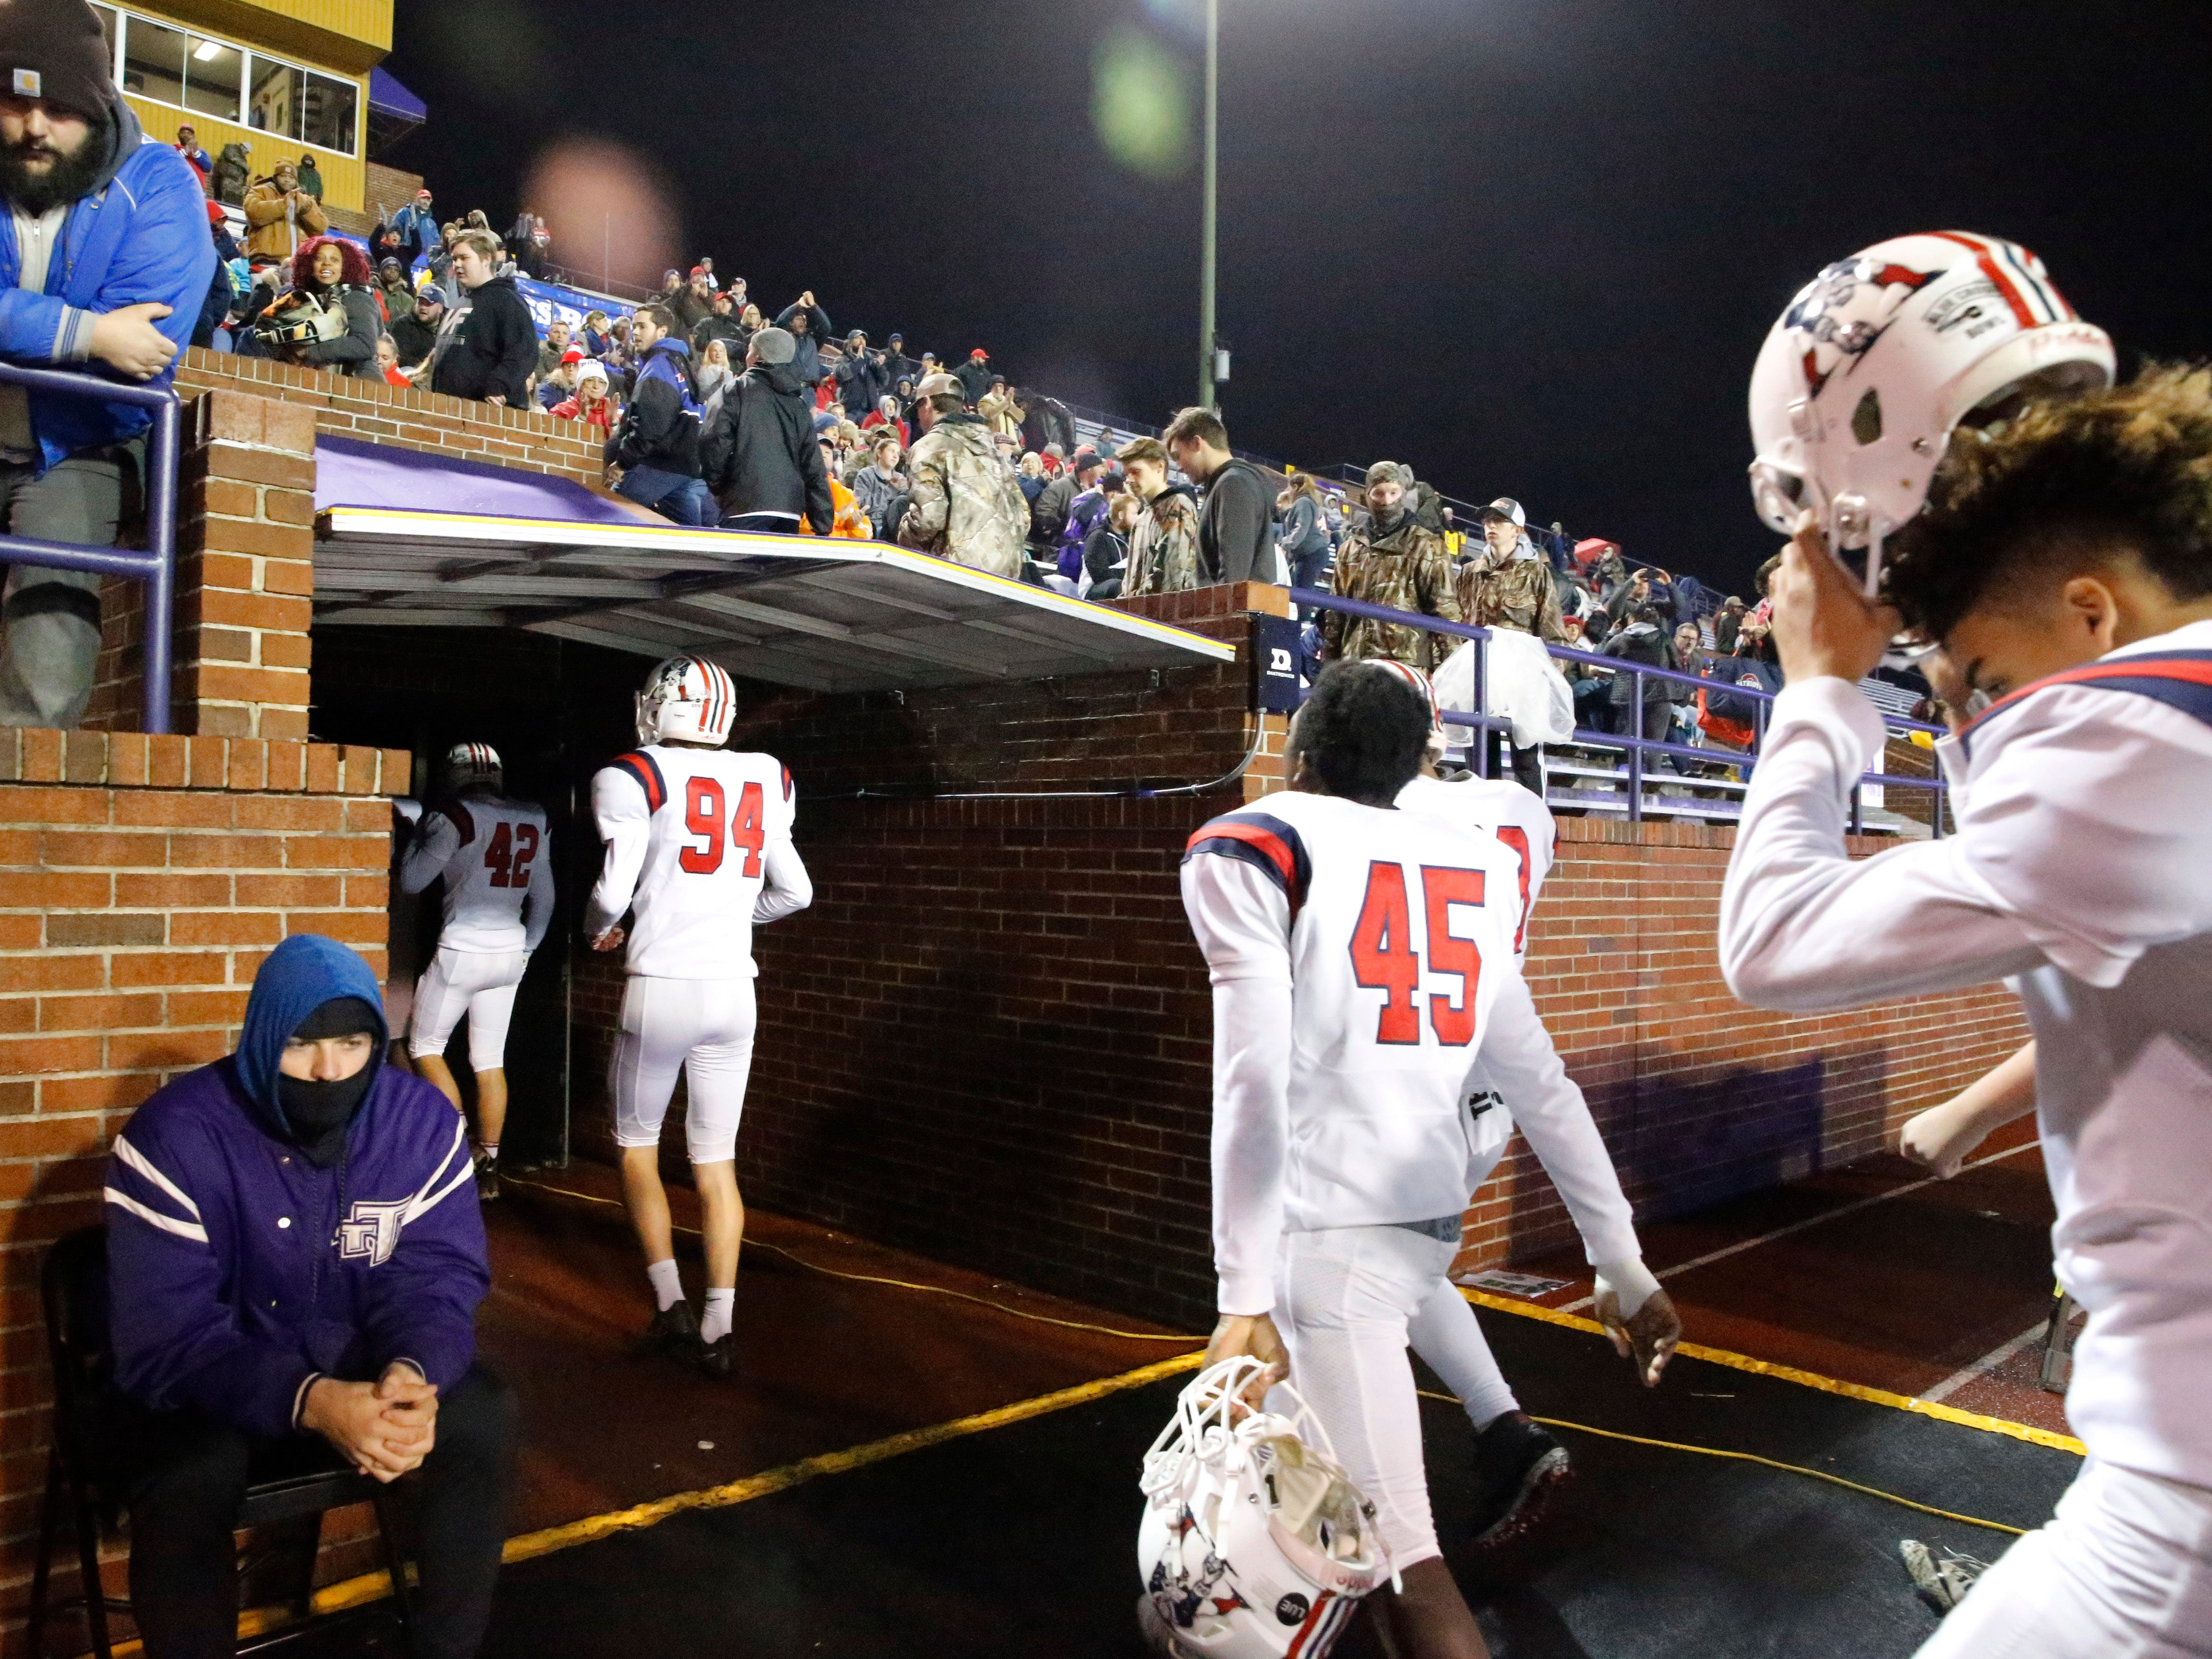 Oakland players head to the locker room before the Class 6A BlueCross Bowl state championship at Tennessee Tech's Tucker Stadium in Cookeville, Tenn., on Thursday, Nov. 29, 2018.